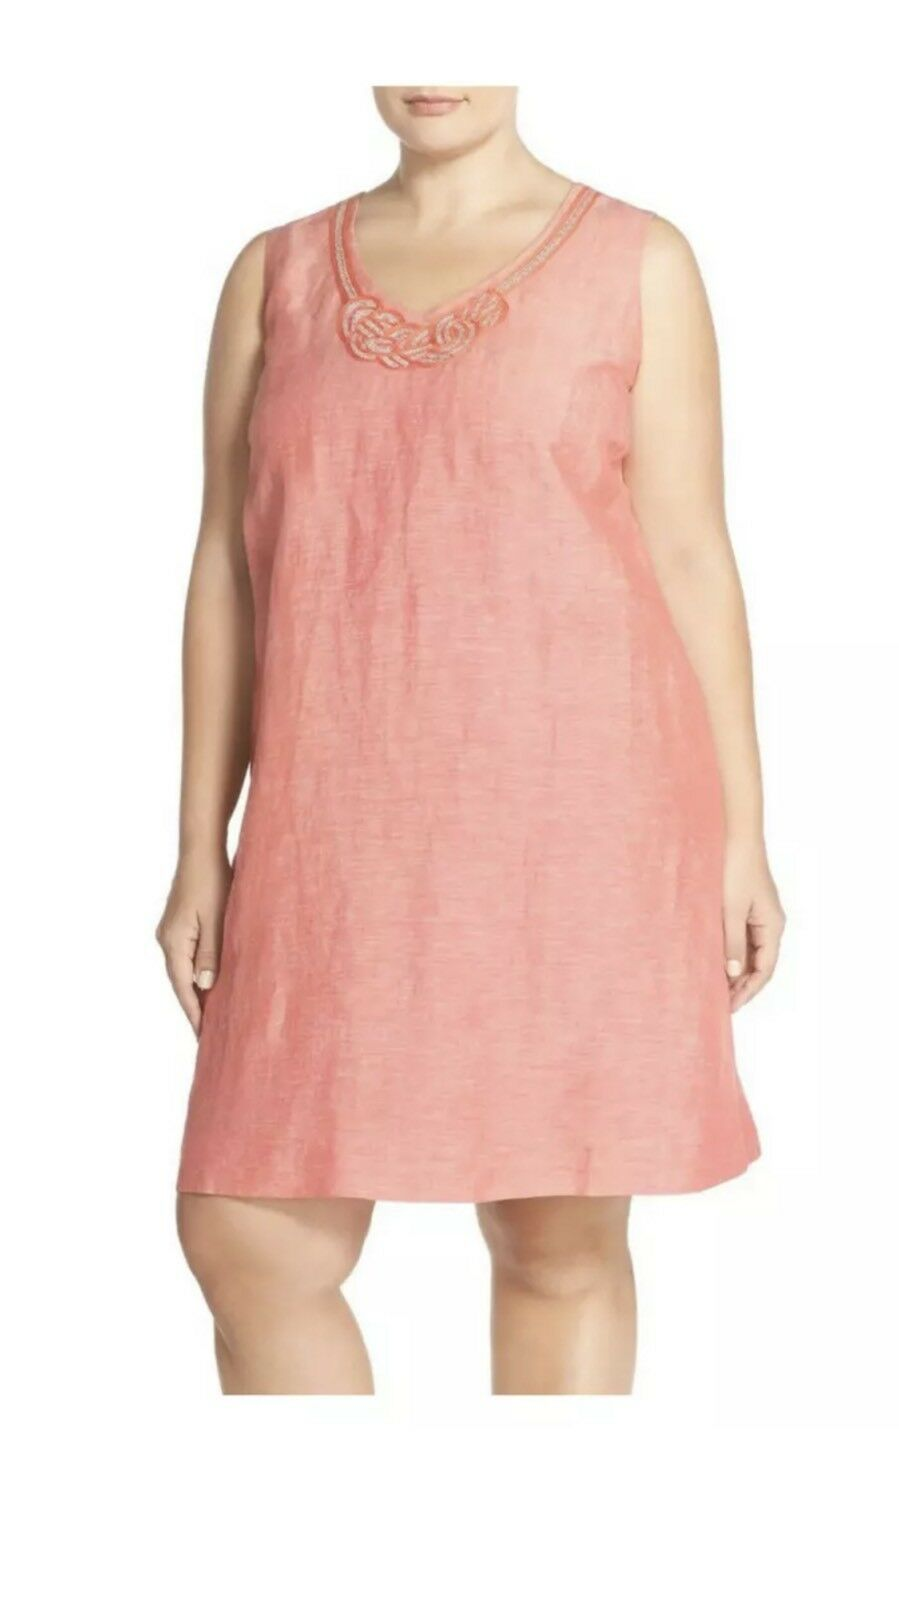 Nic + Zoe Jetset Spice Rose Mix Linen Blend Embellished Sleeveless Dress 3X q42